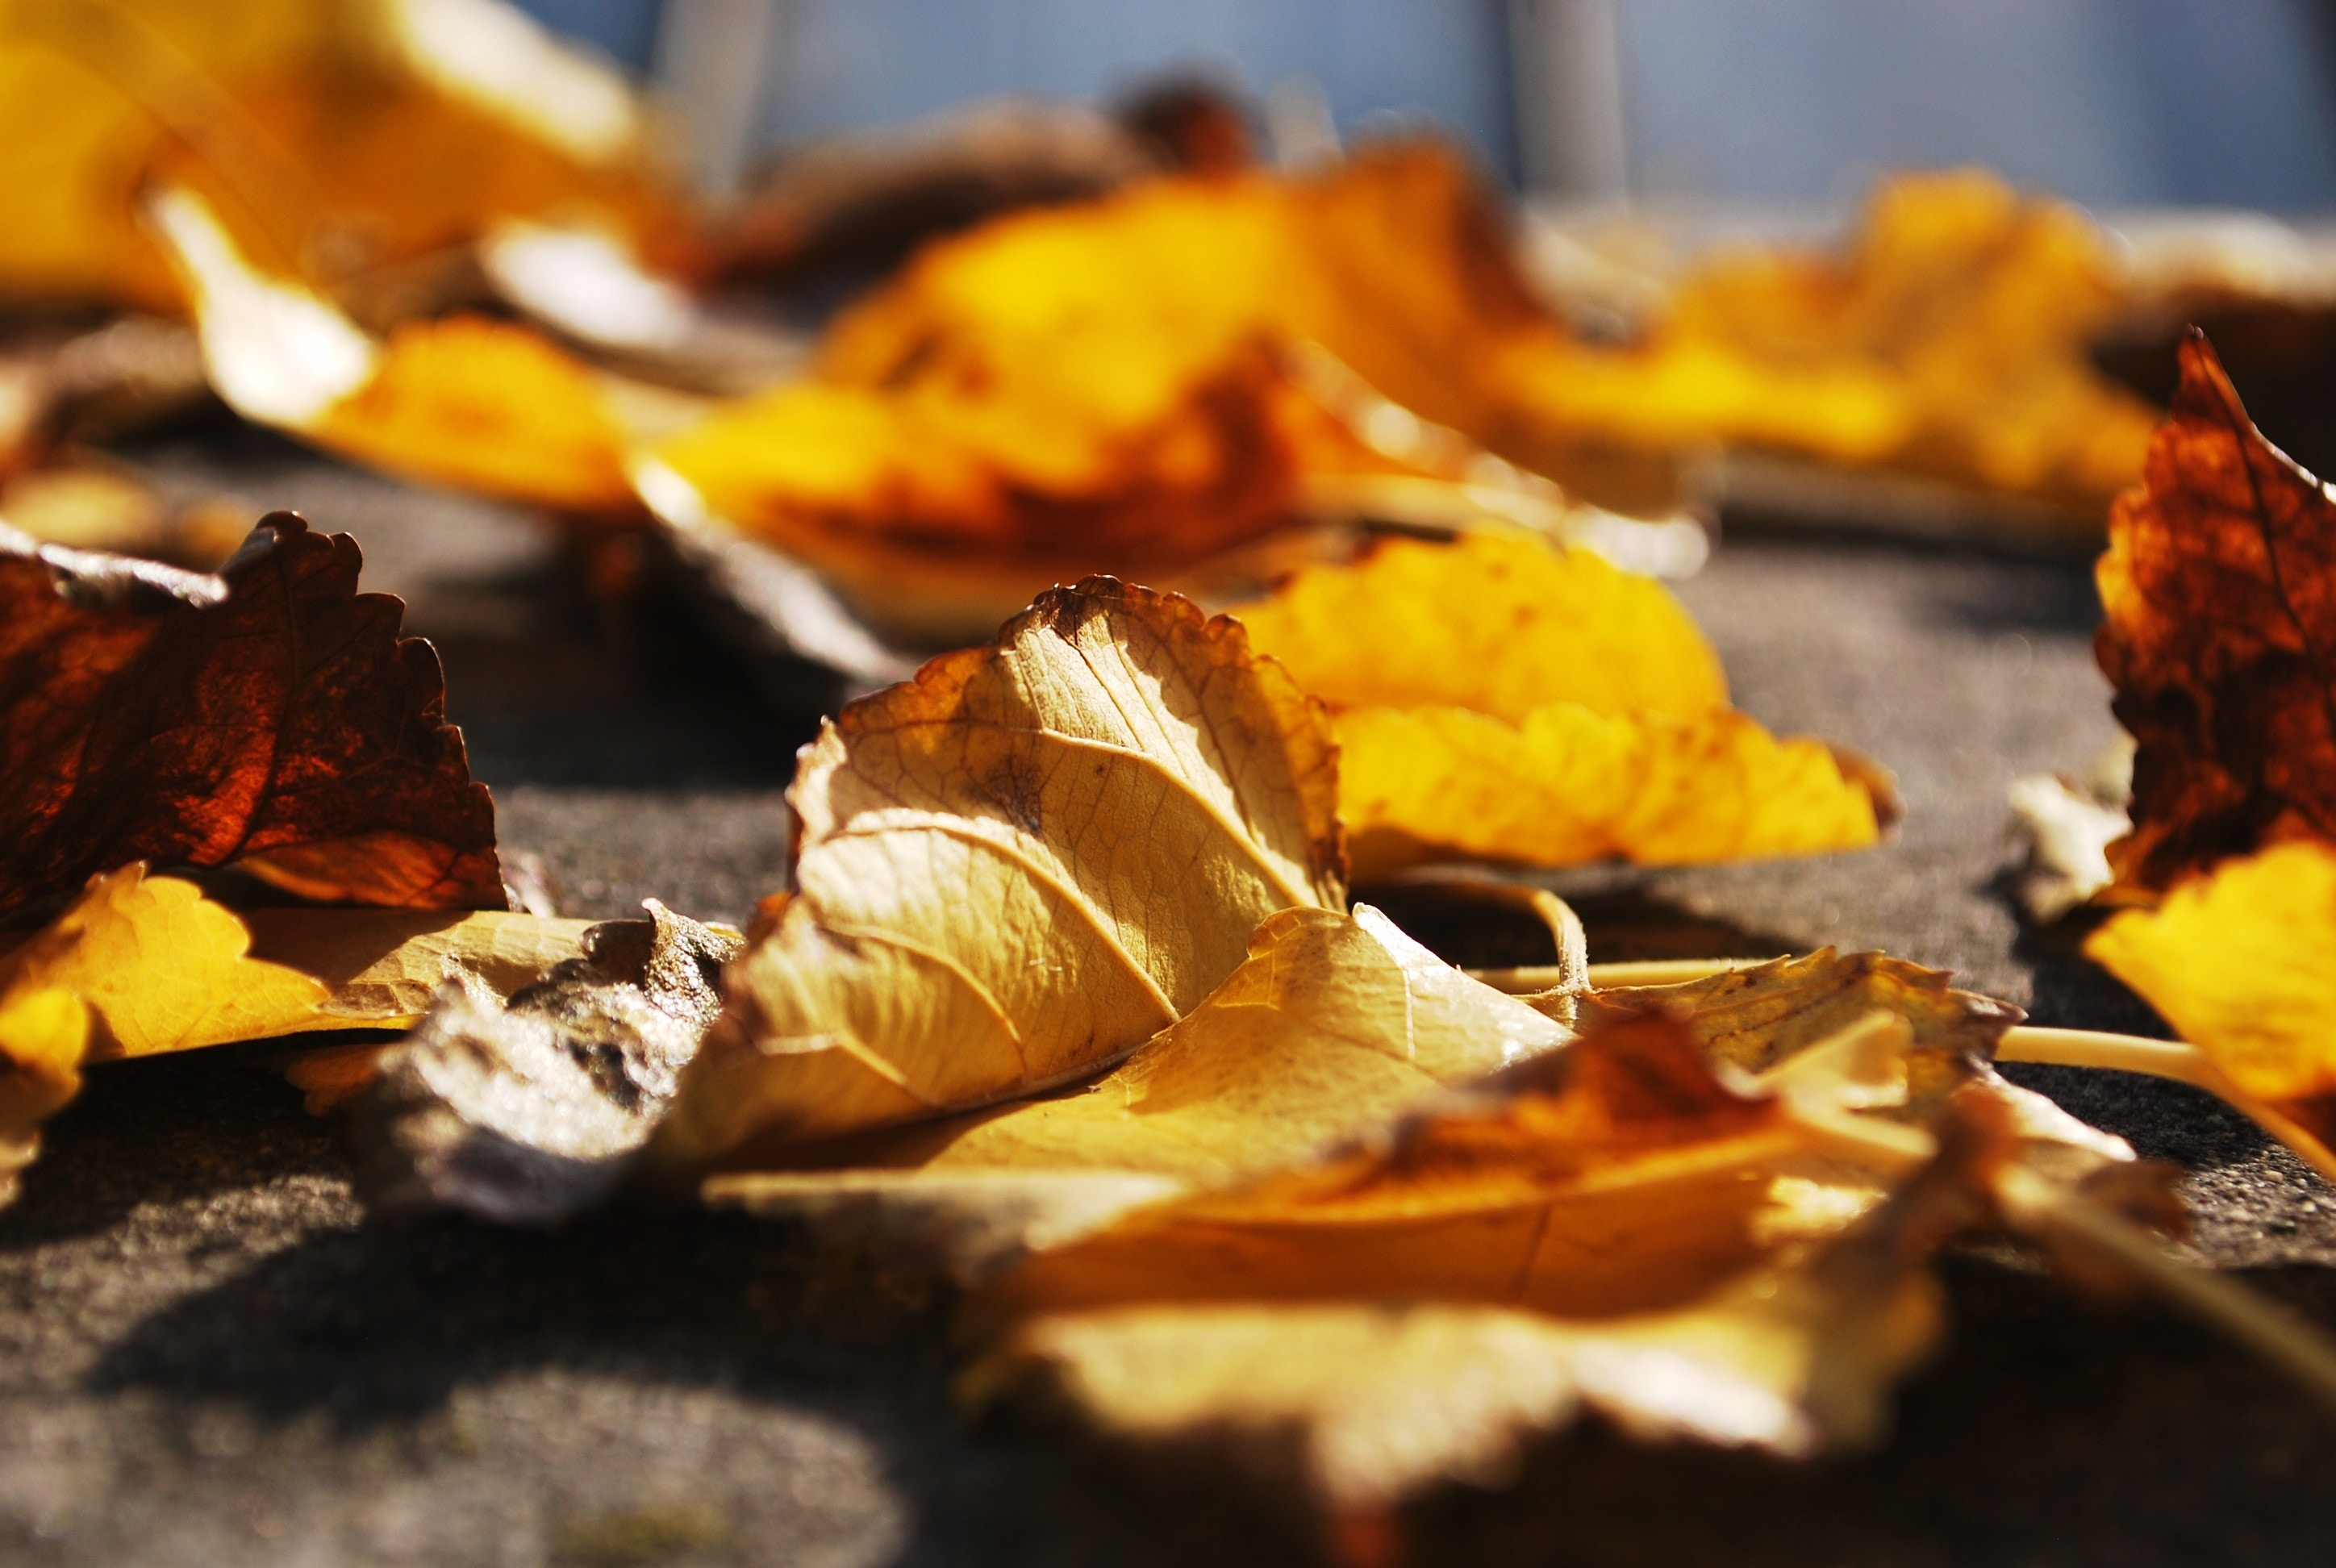 A picture of orange leaves by petradr on Unsplash